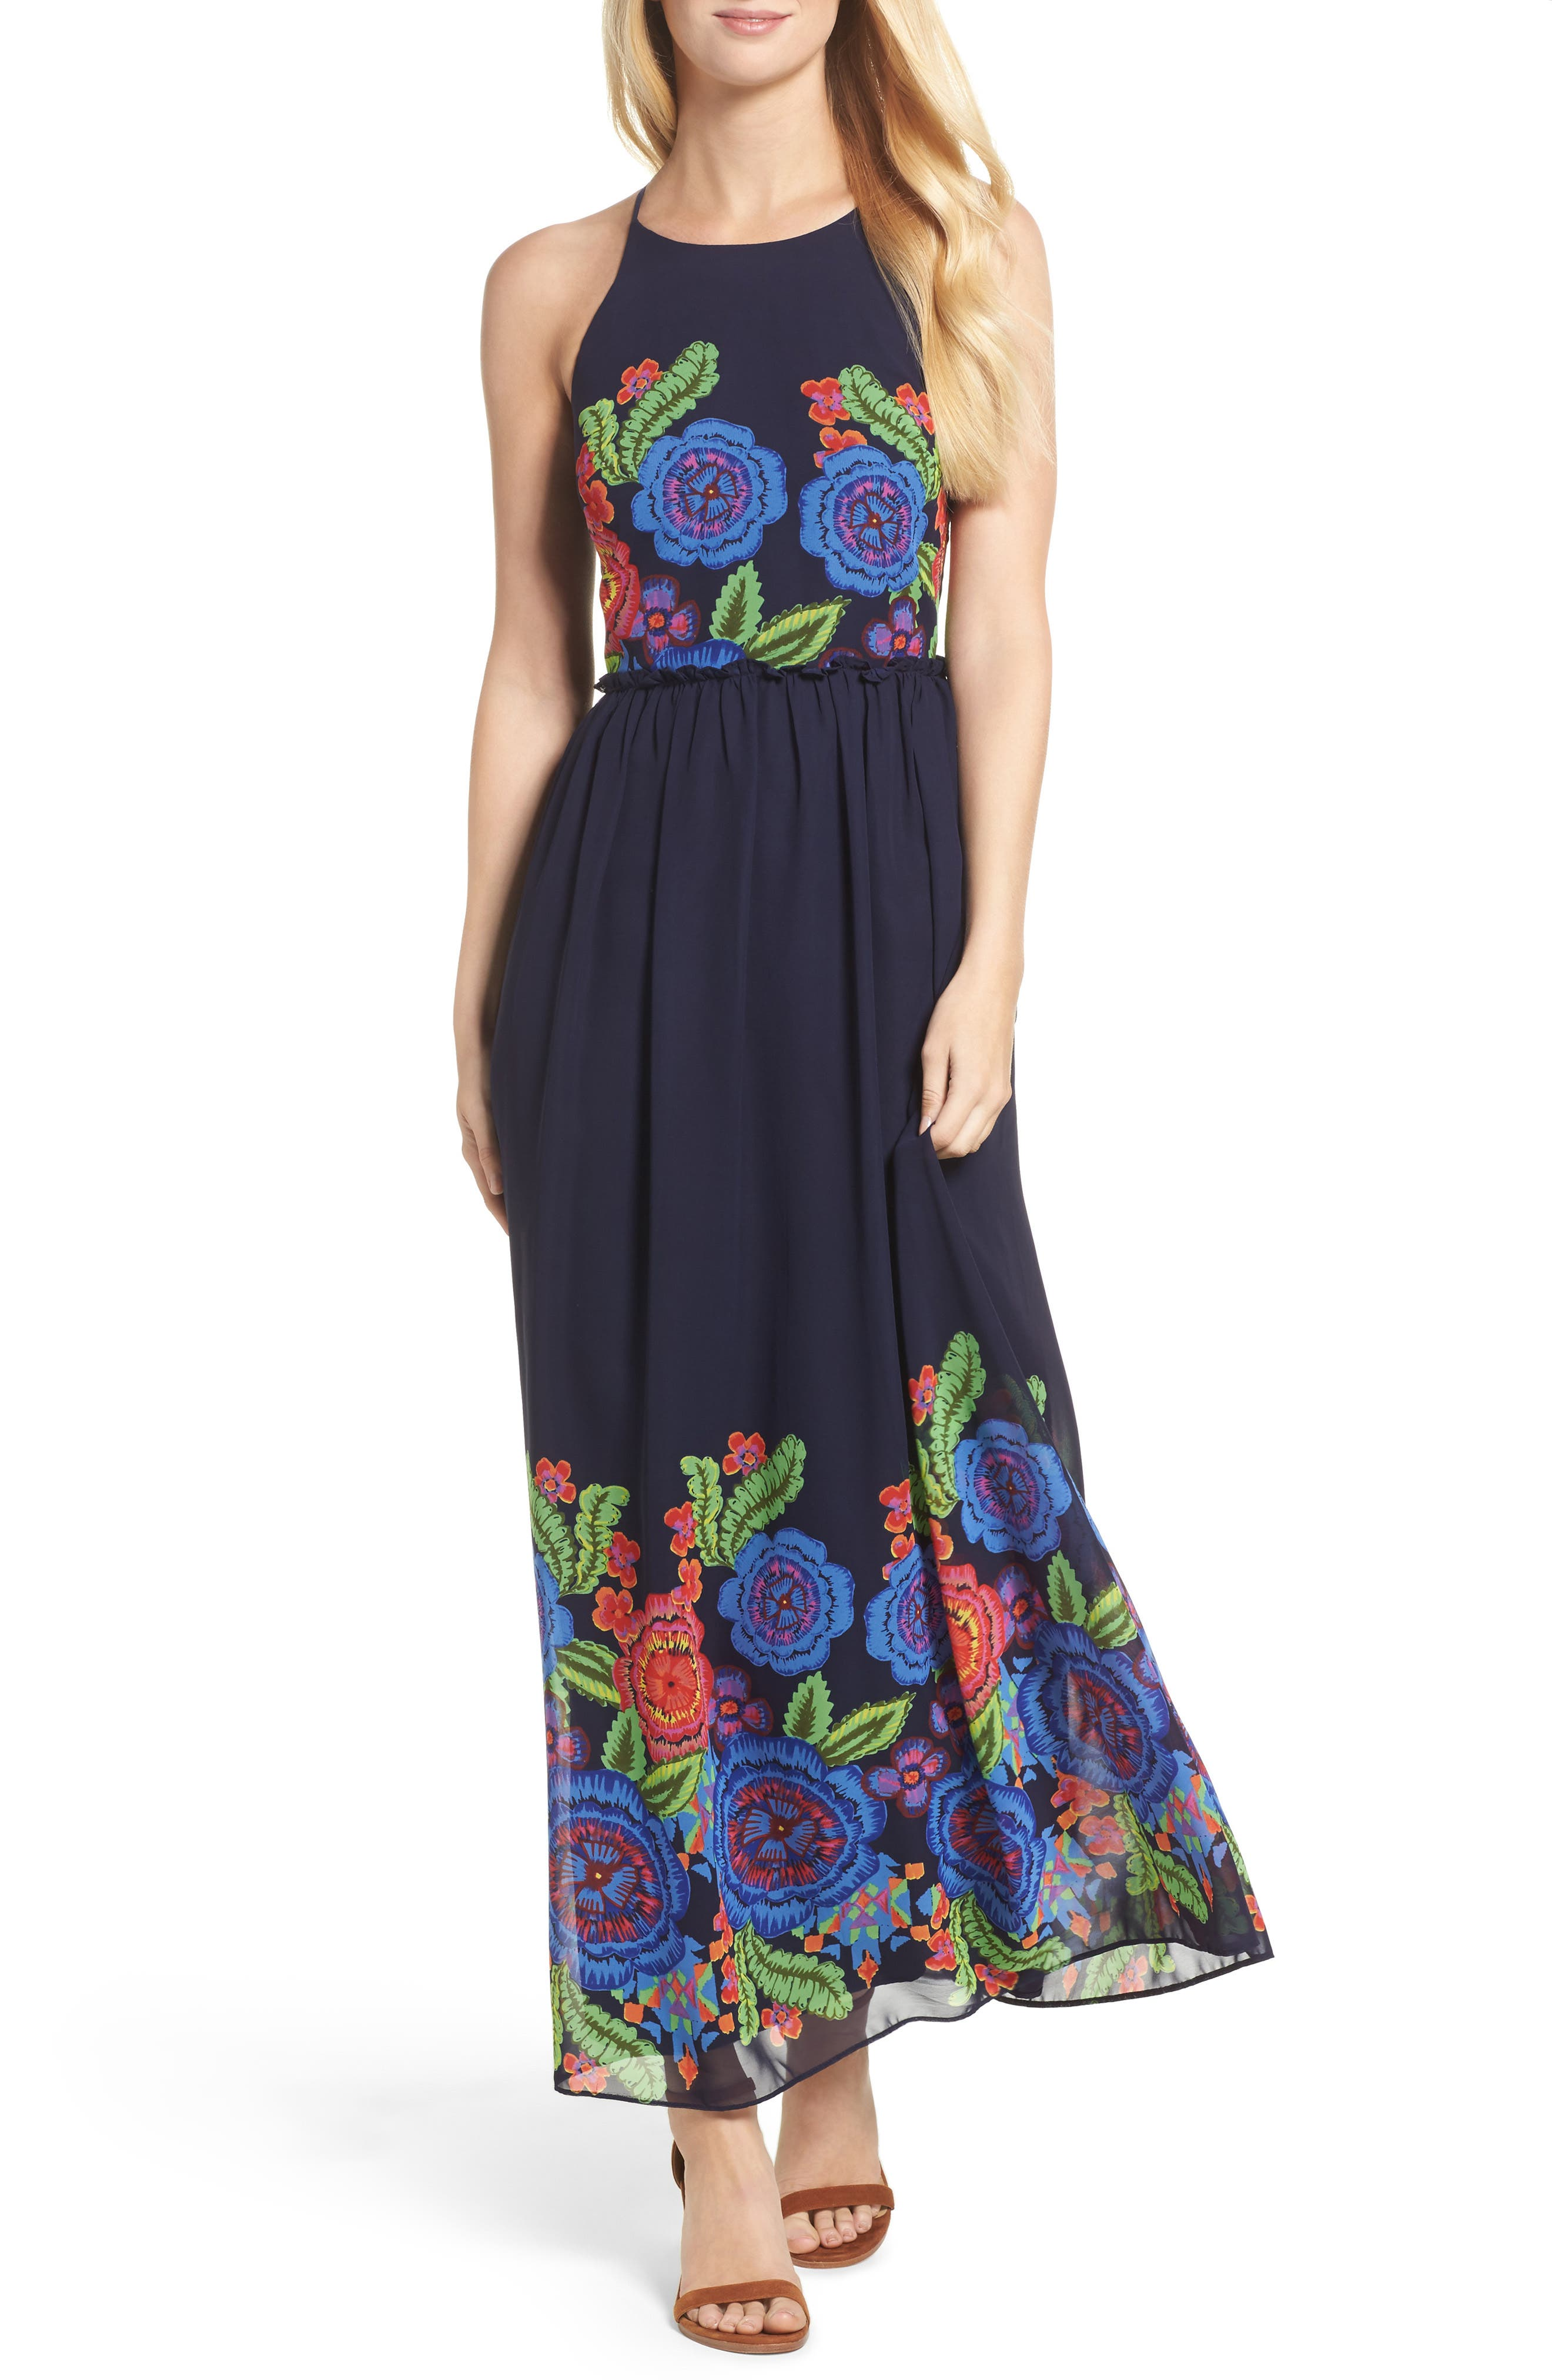 Taylor Dresses Zinnea Maxi Dress